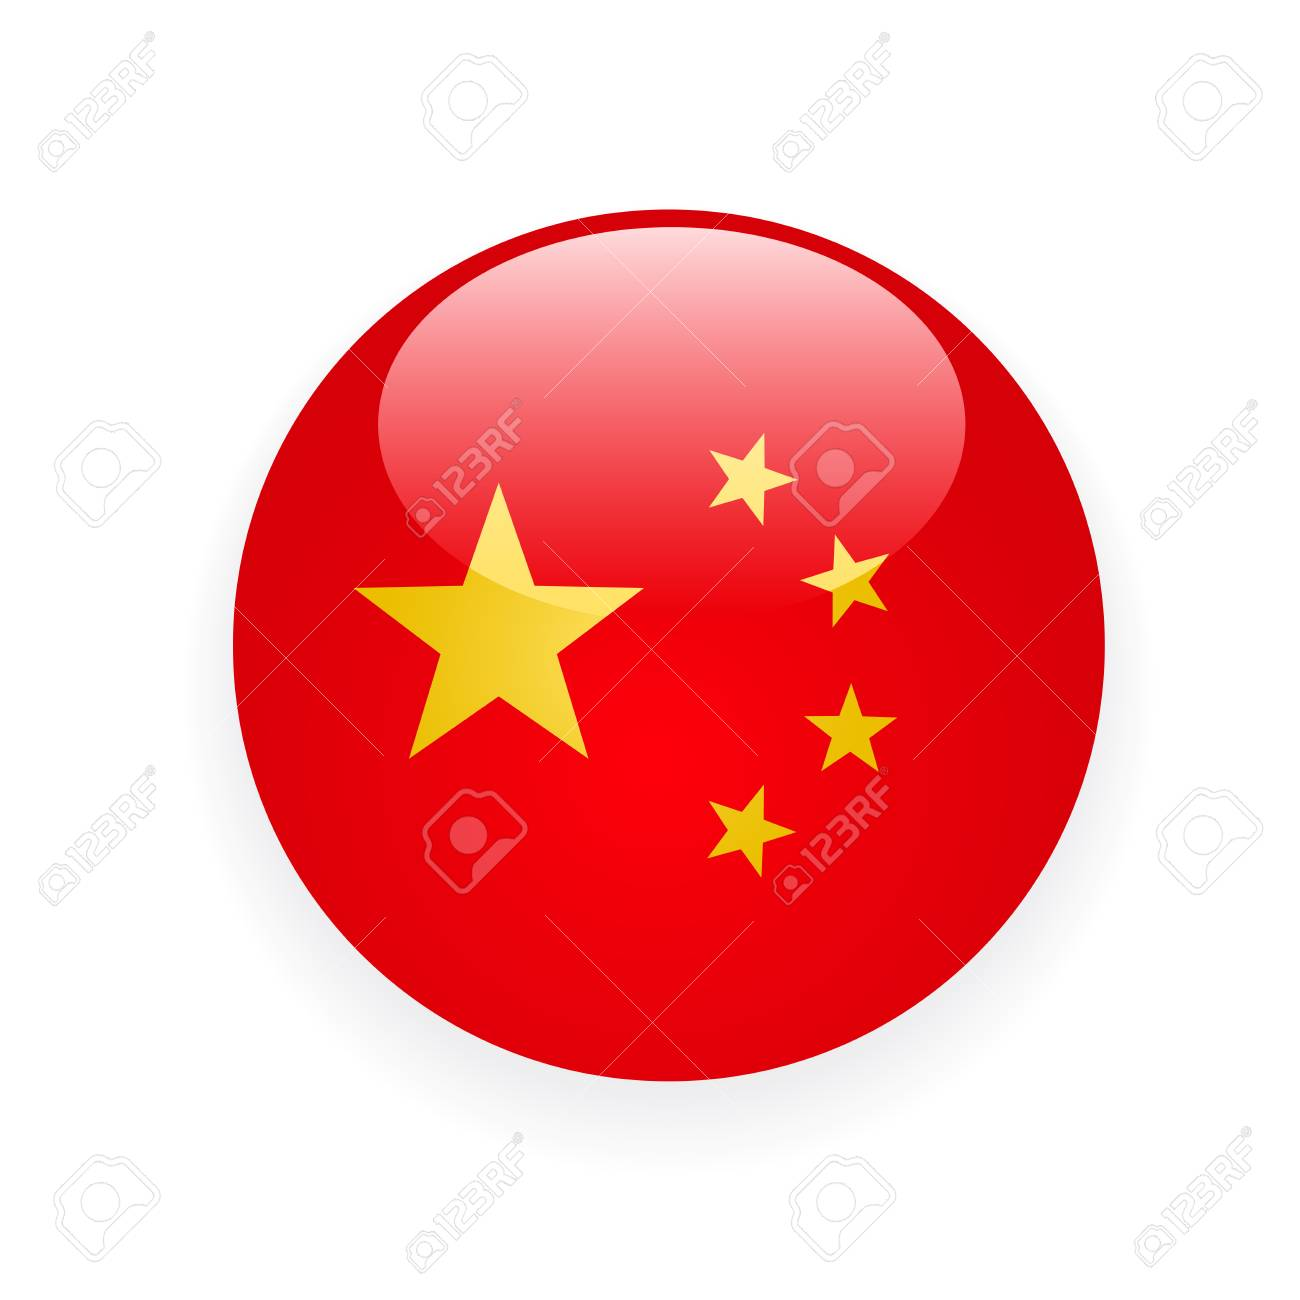 China Flag Round Button Icon On White Background Royalty Free Cliparts Vectors And Stock Illustration Image 114757513